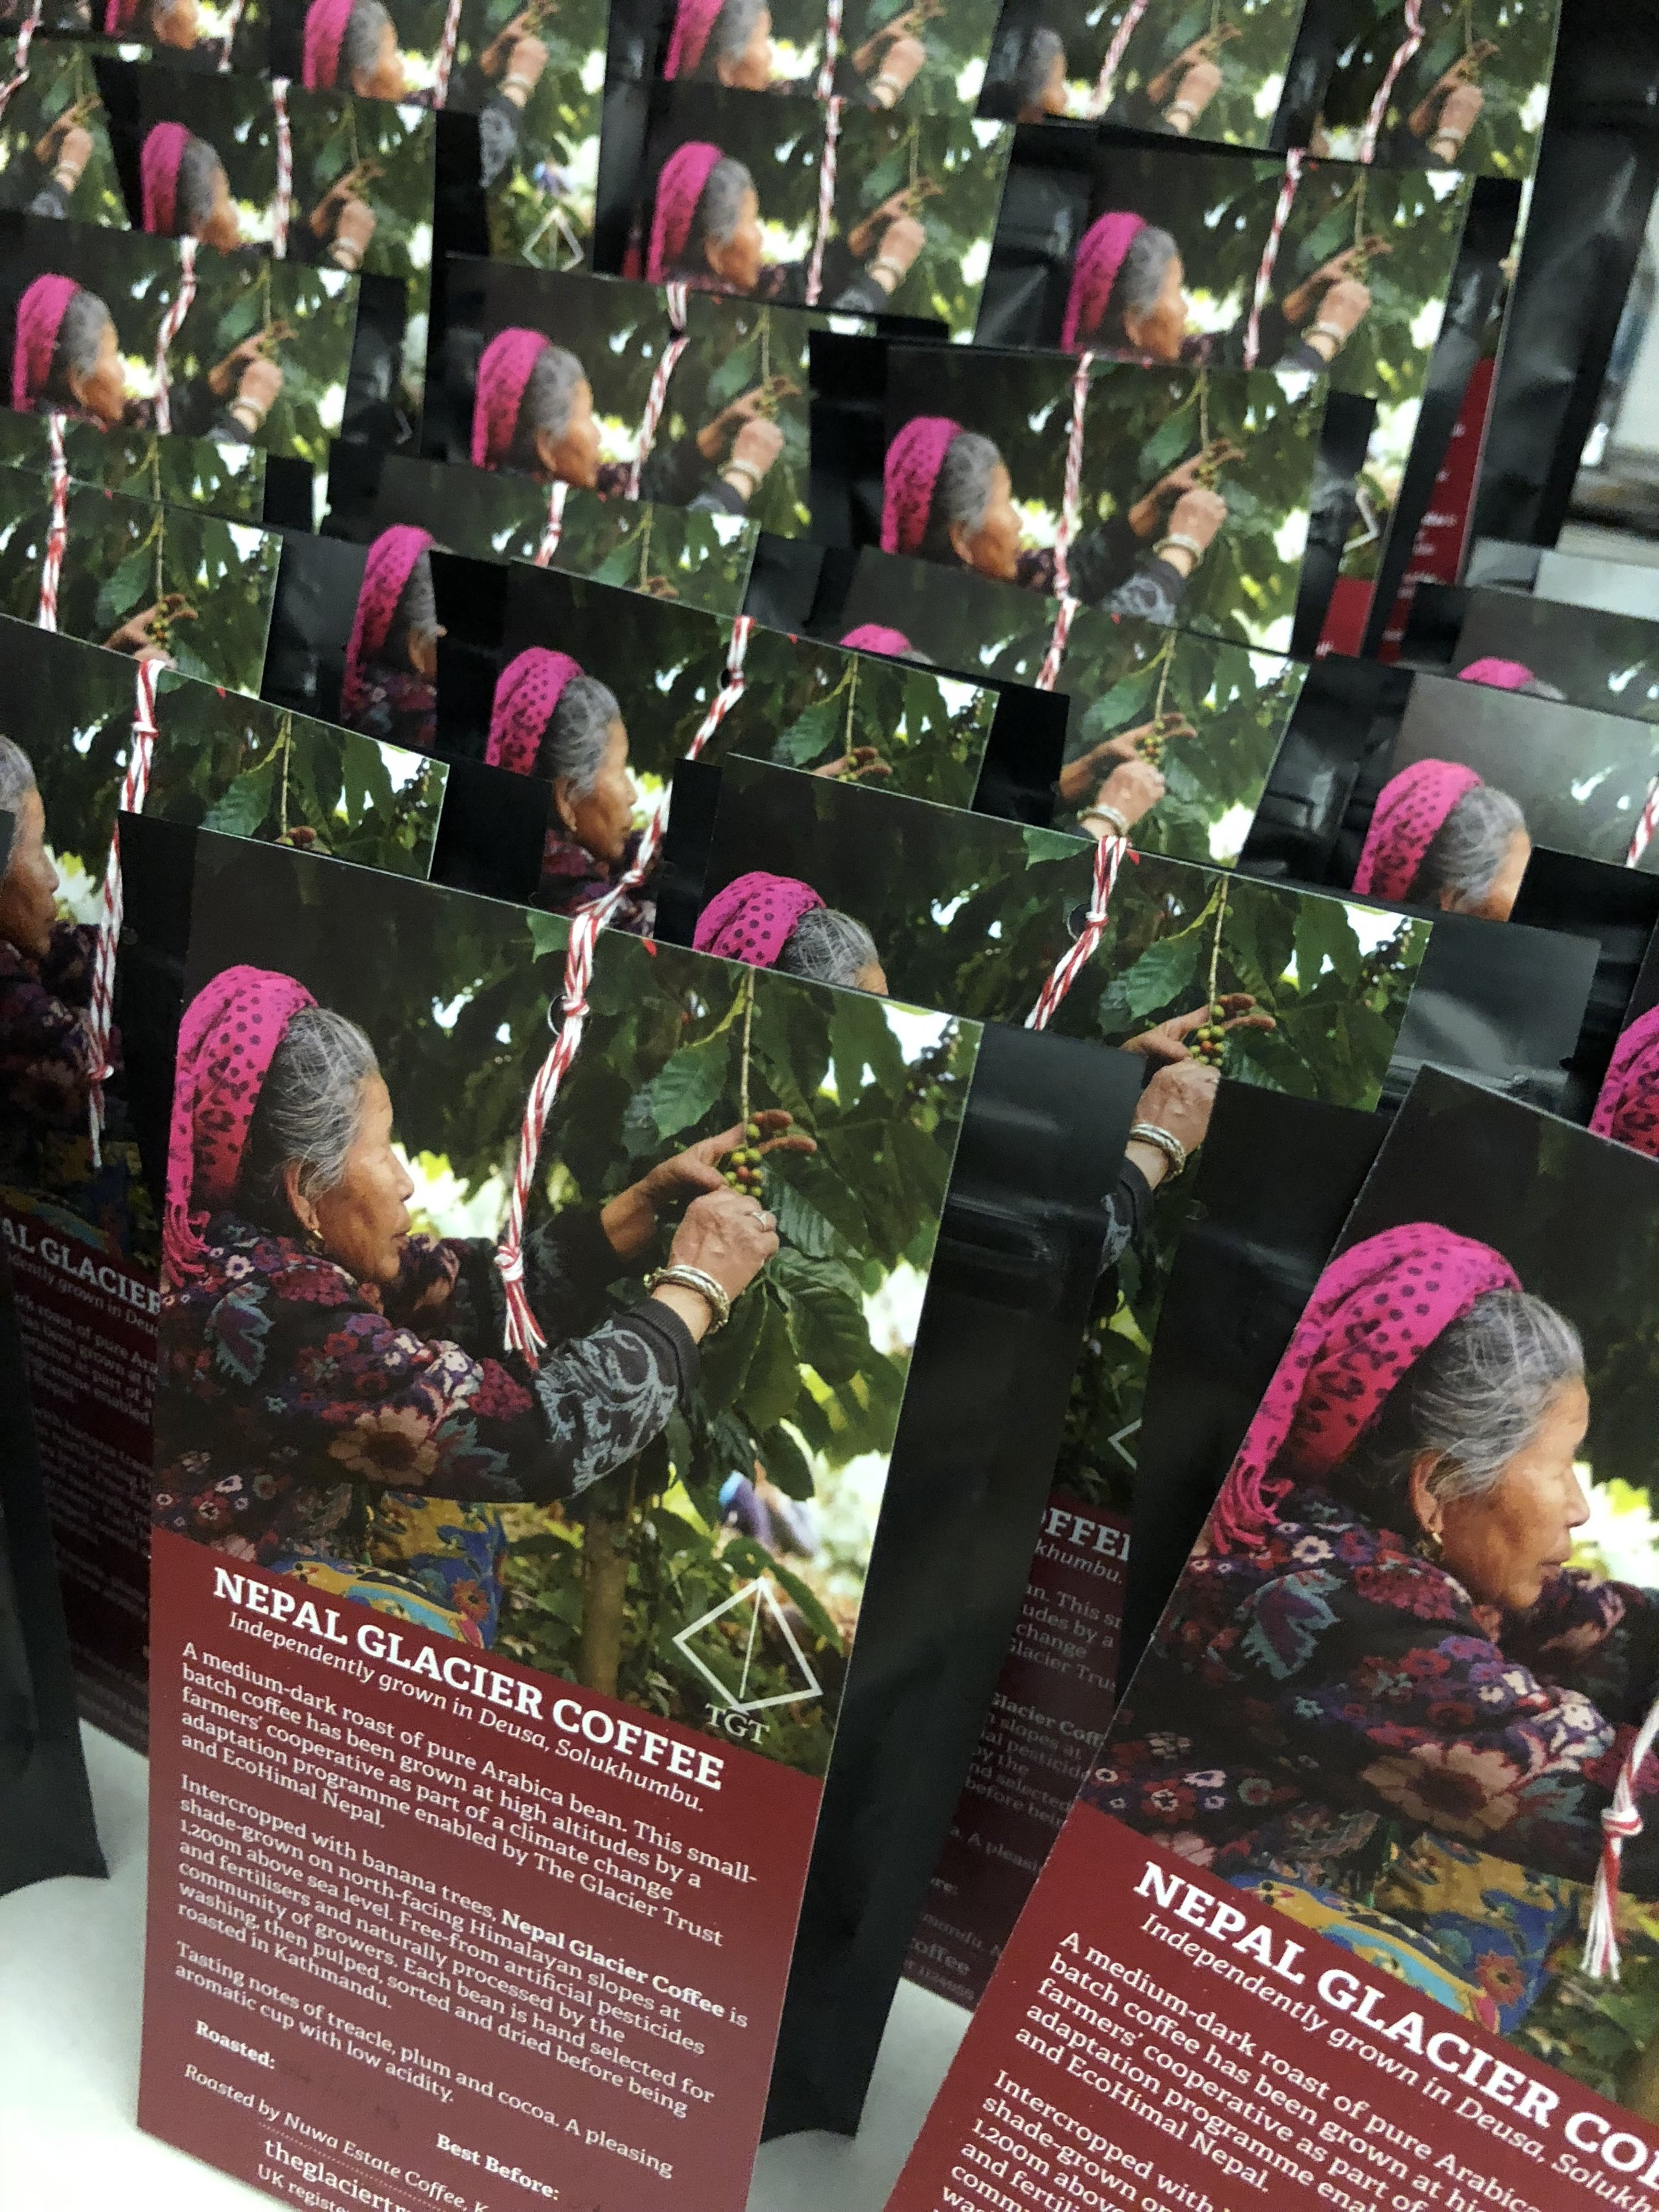 Finally, back in London, the coffee is re-packaged into 150g bags and sold through the TGT website. All of the profit raised from selling the coffee (£2 per bag) returns to Nepal where TGT enables further climate change adaptation work.